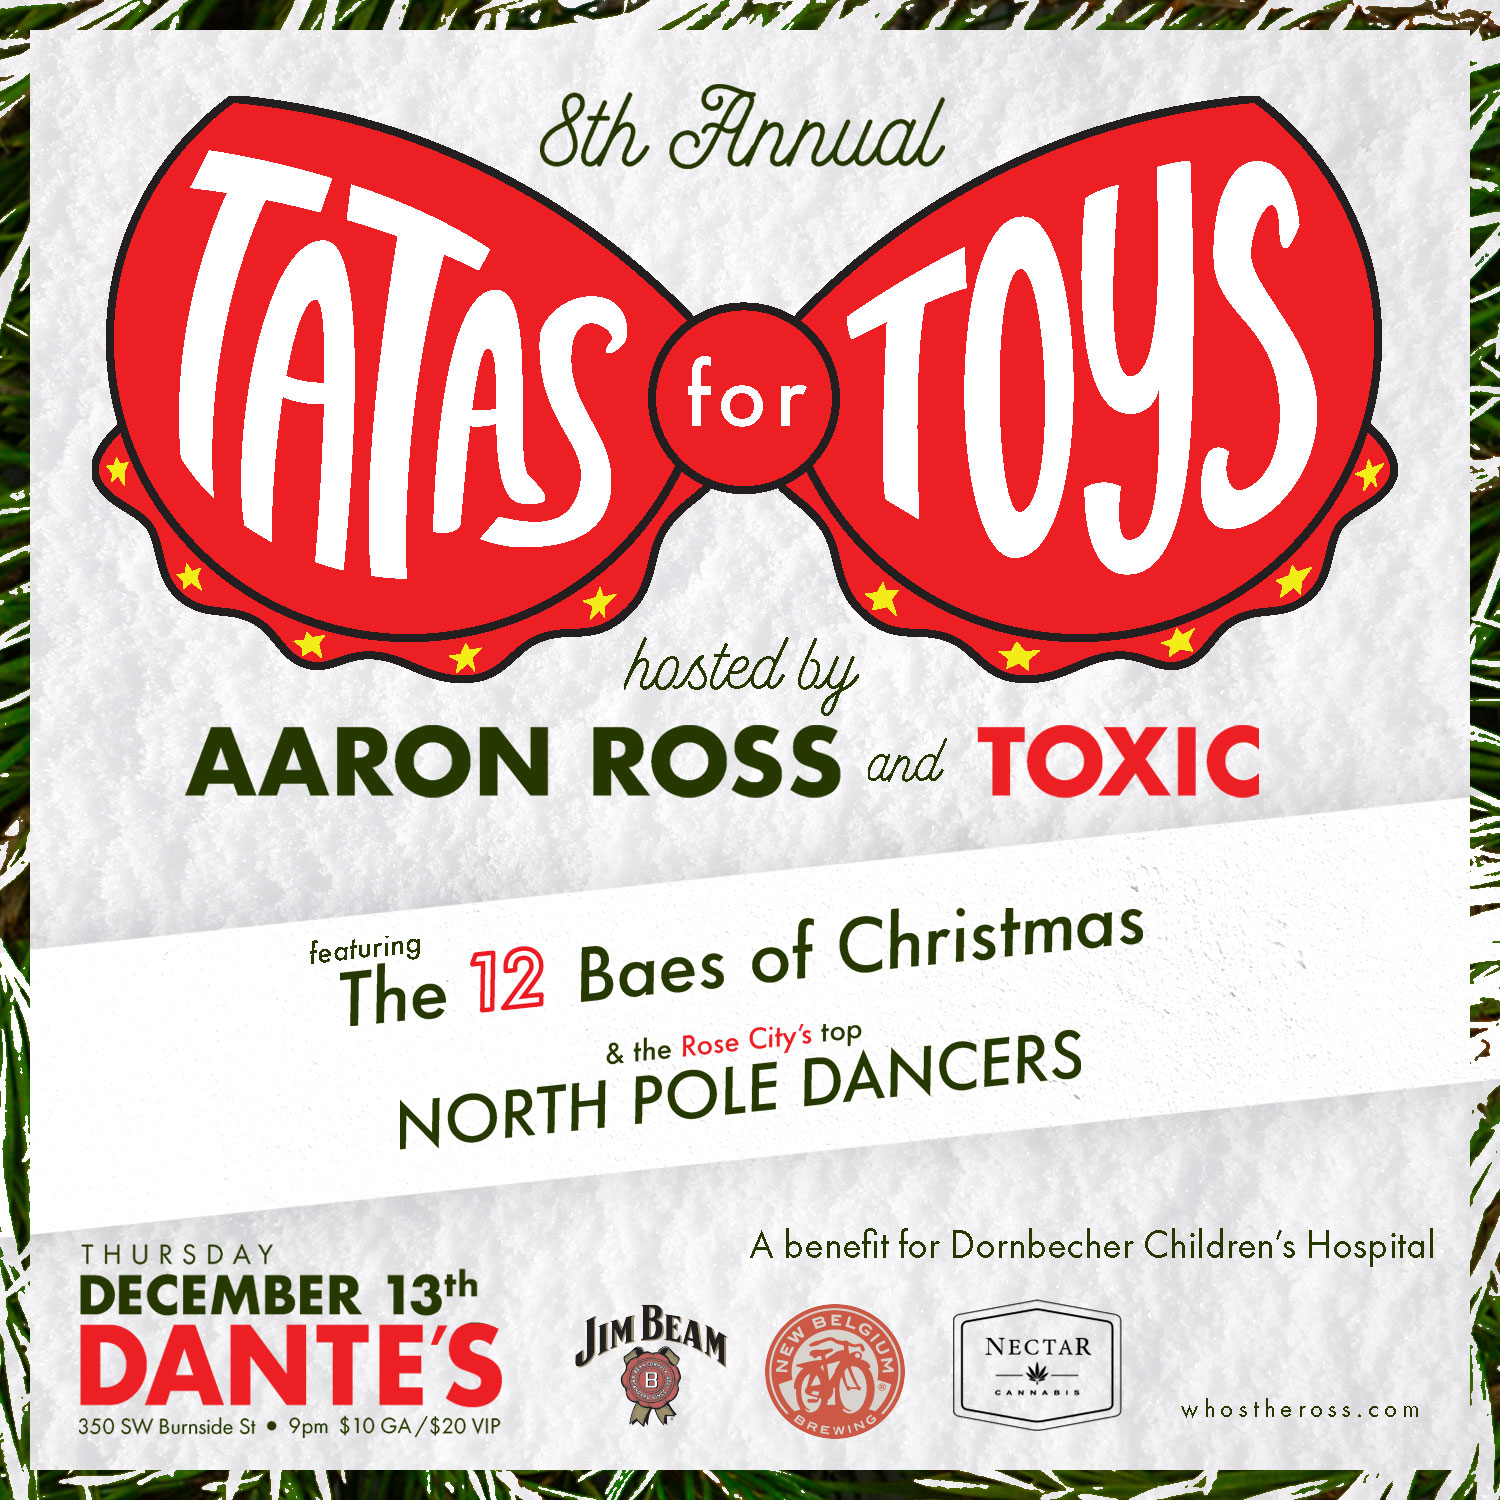 """""""Tatas for Toys"""" tatas for toys Aaron Ross """"Who's the Ross?"""" stripper strippers PDX Portland weird Xmas Christmas Holidays comedy comedian fundraiser Doernbecher Children's Hospital pole dancer Dante's live performance entertainment"""